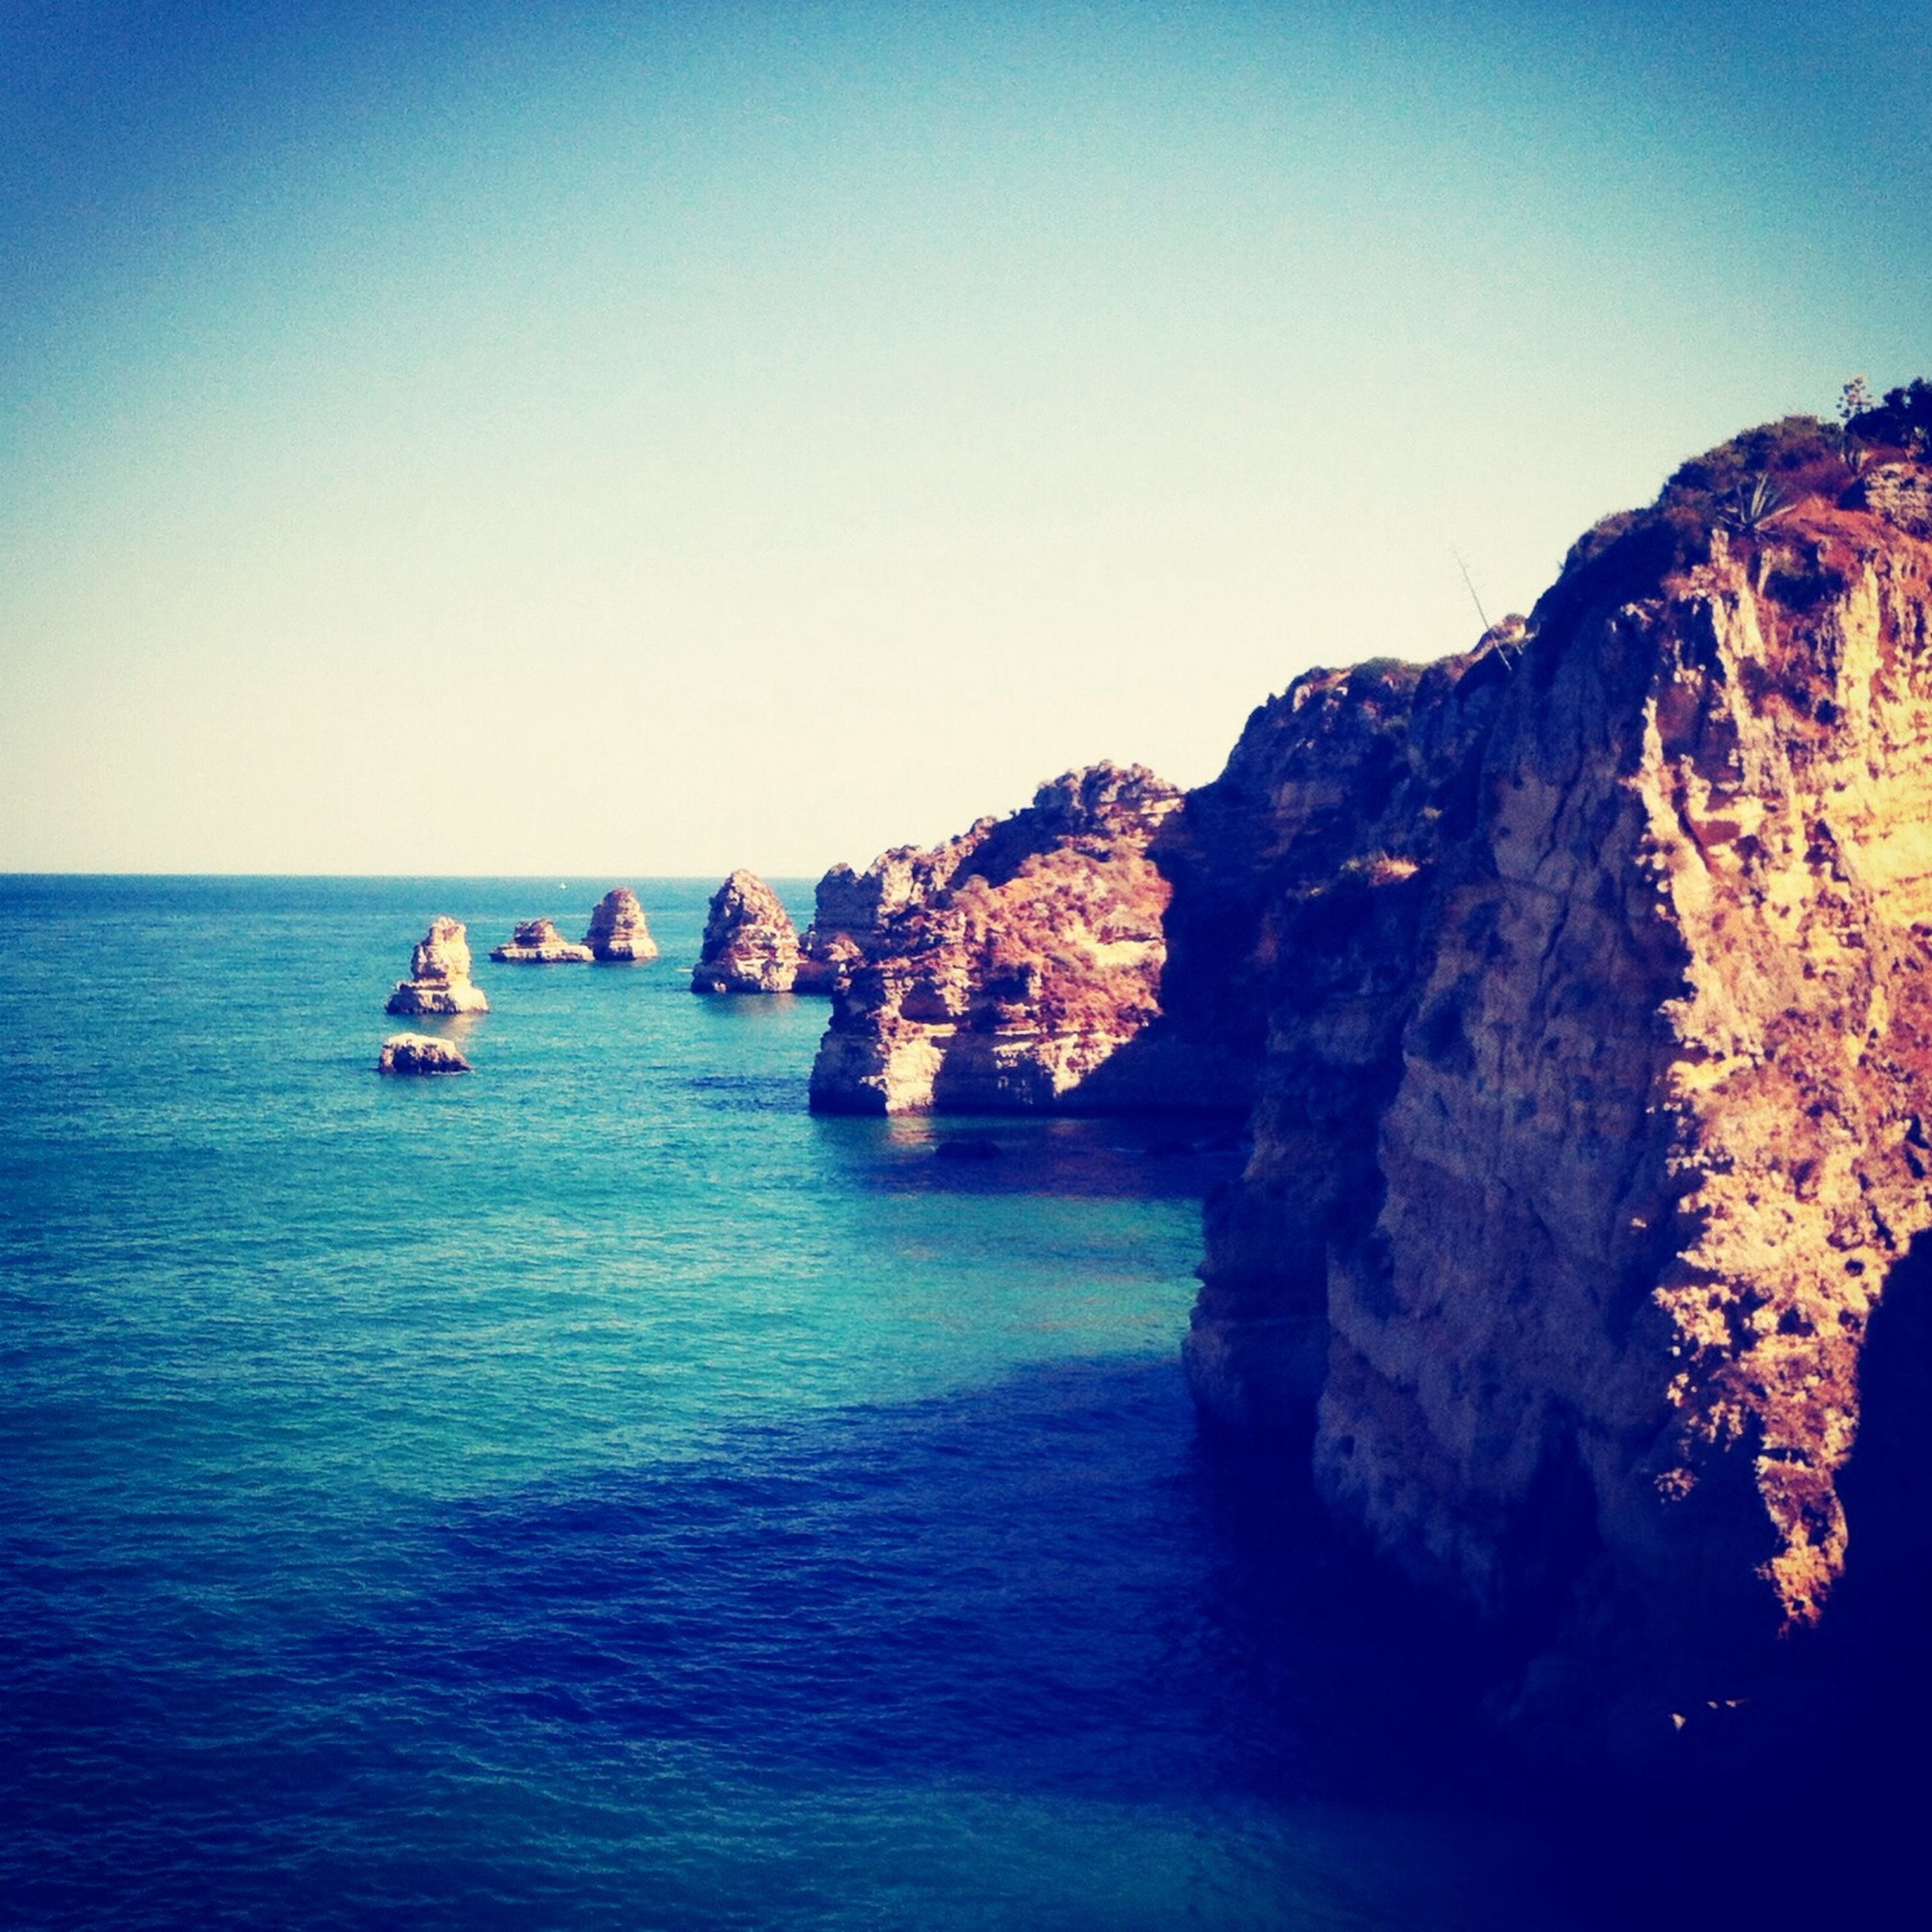 sea, water, clear sky, tranquility, tranquil scene, scenics, rock formation, rock - object, beauty in nature, copy space, horizon over water, blue, nature, cliff, waterfront, idyllic, rock, travel, sky, travel destinations